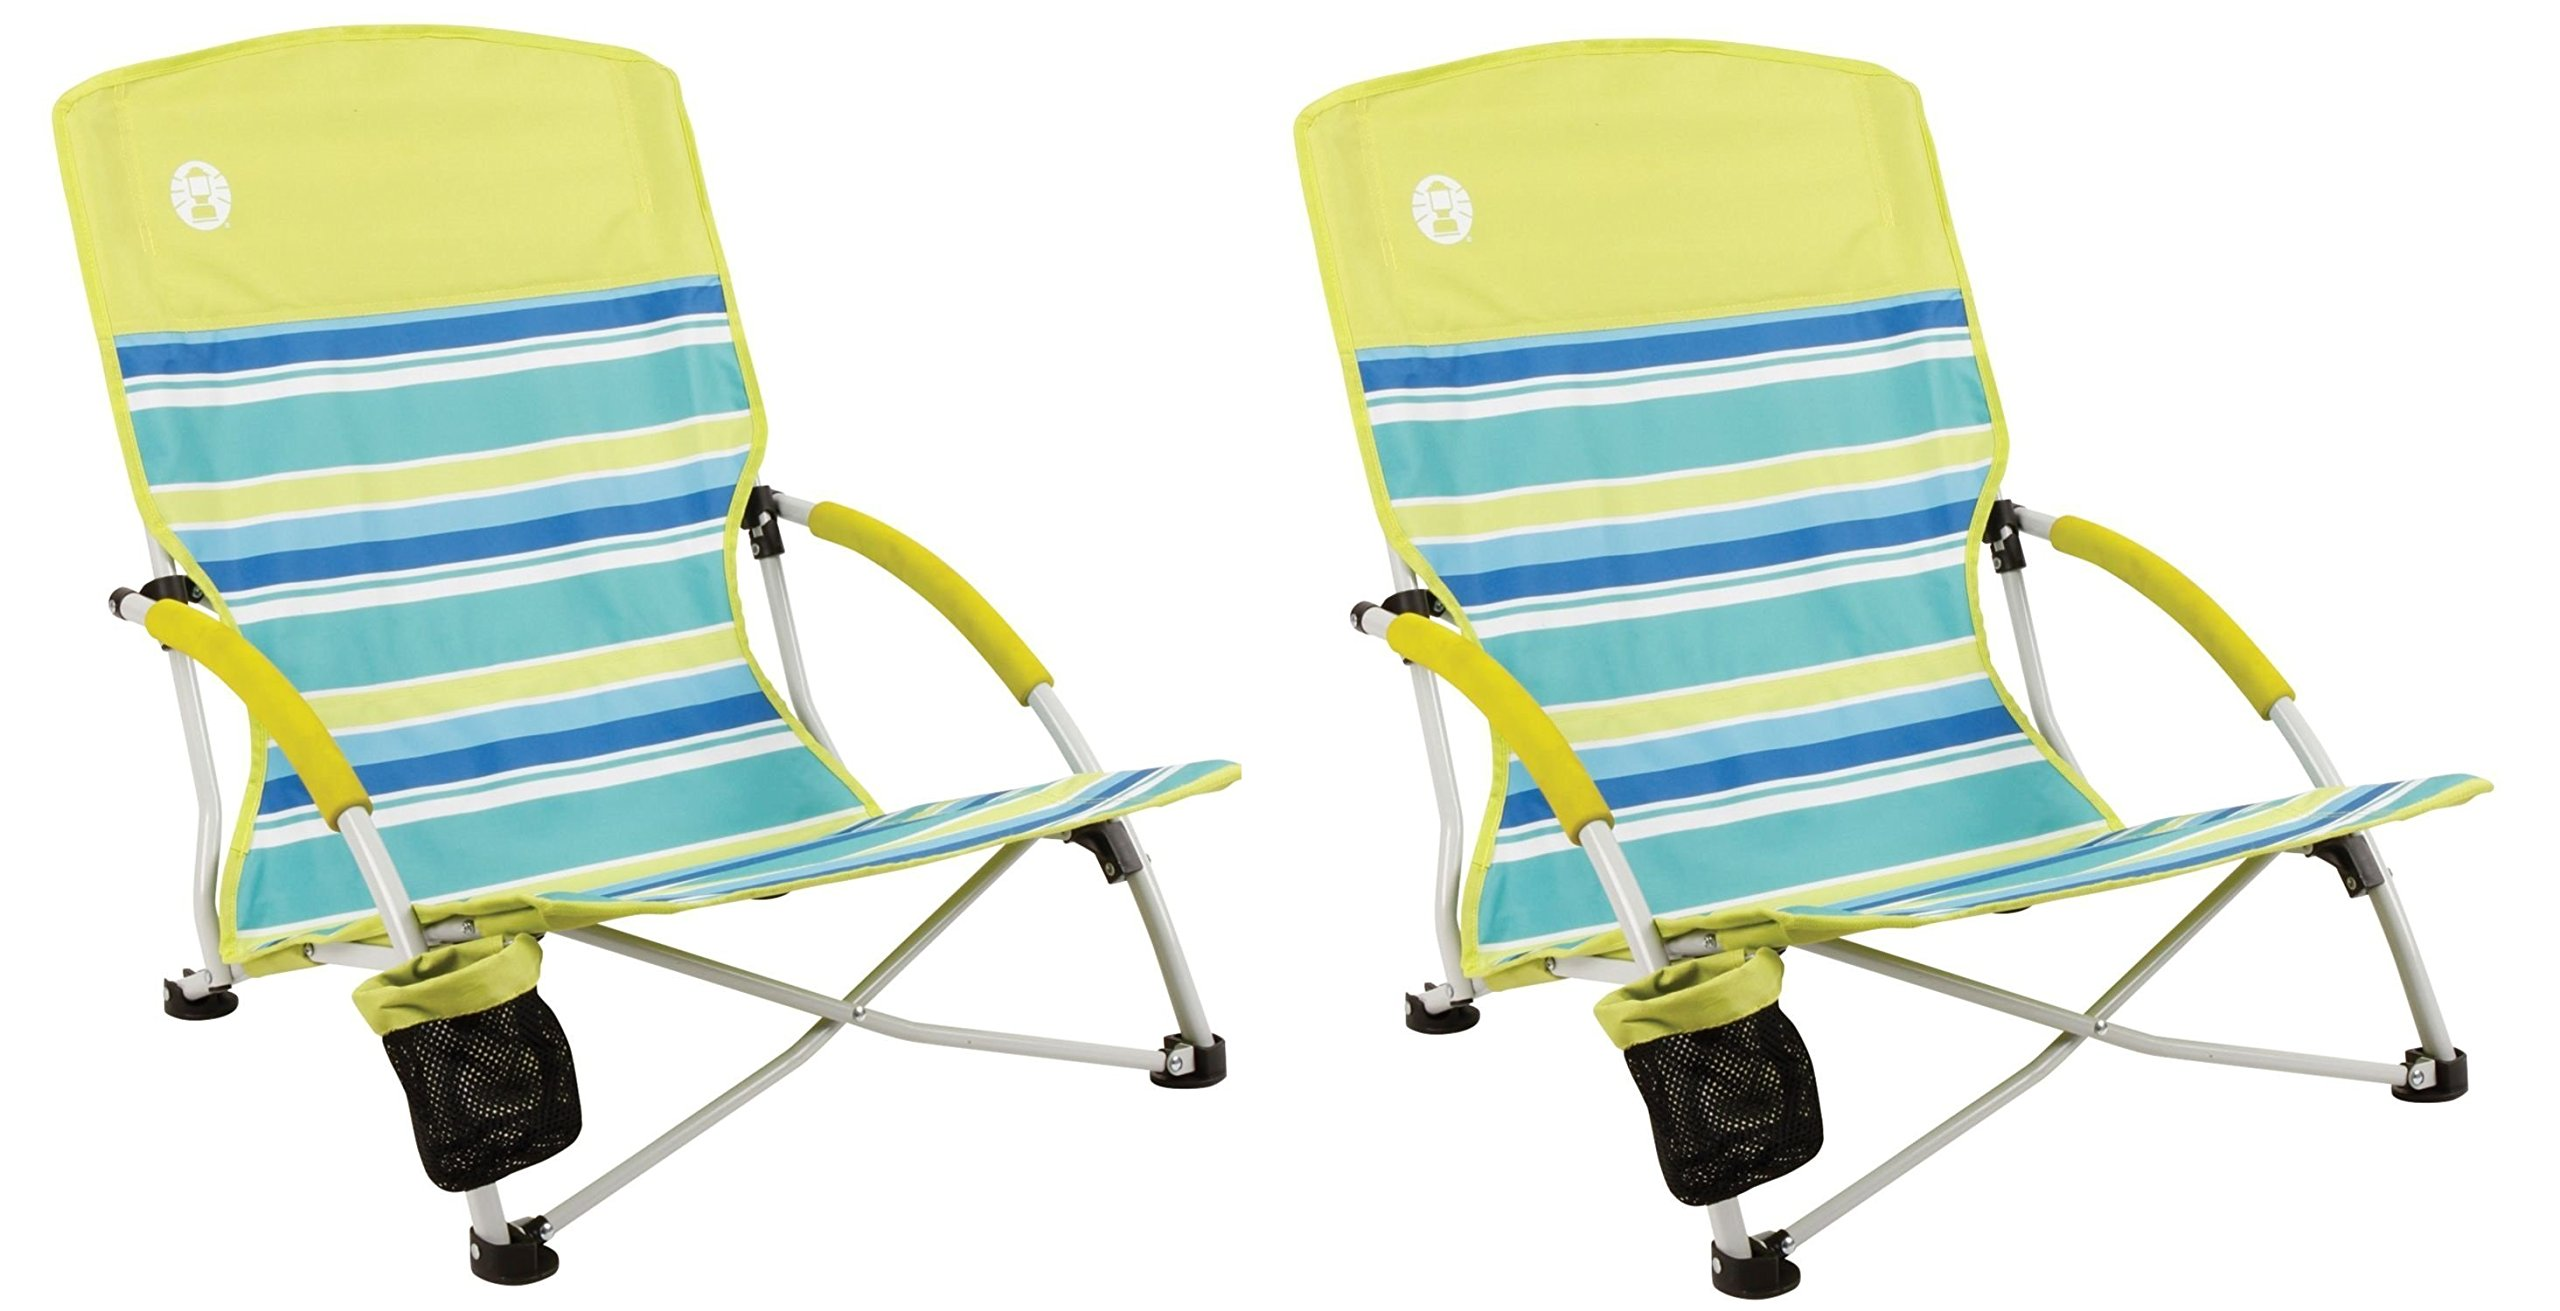 Coleman Utopia Breeze Beach Sling Chair (2-Chairs) by Coleman.